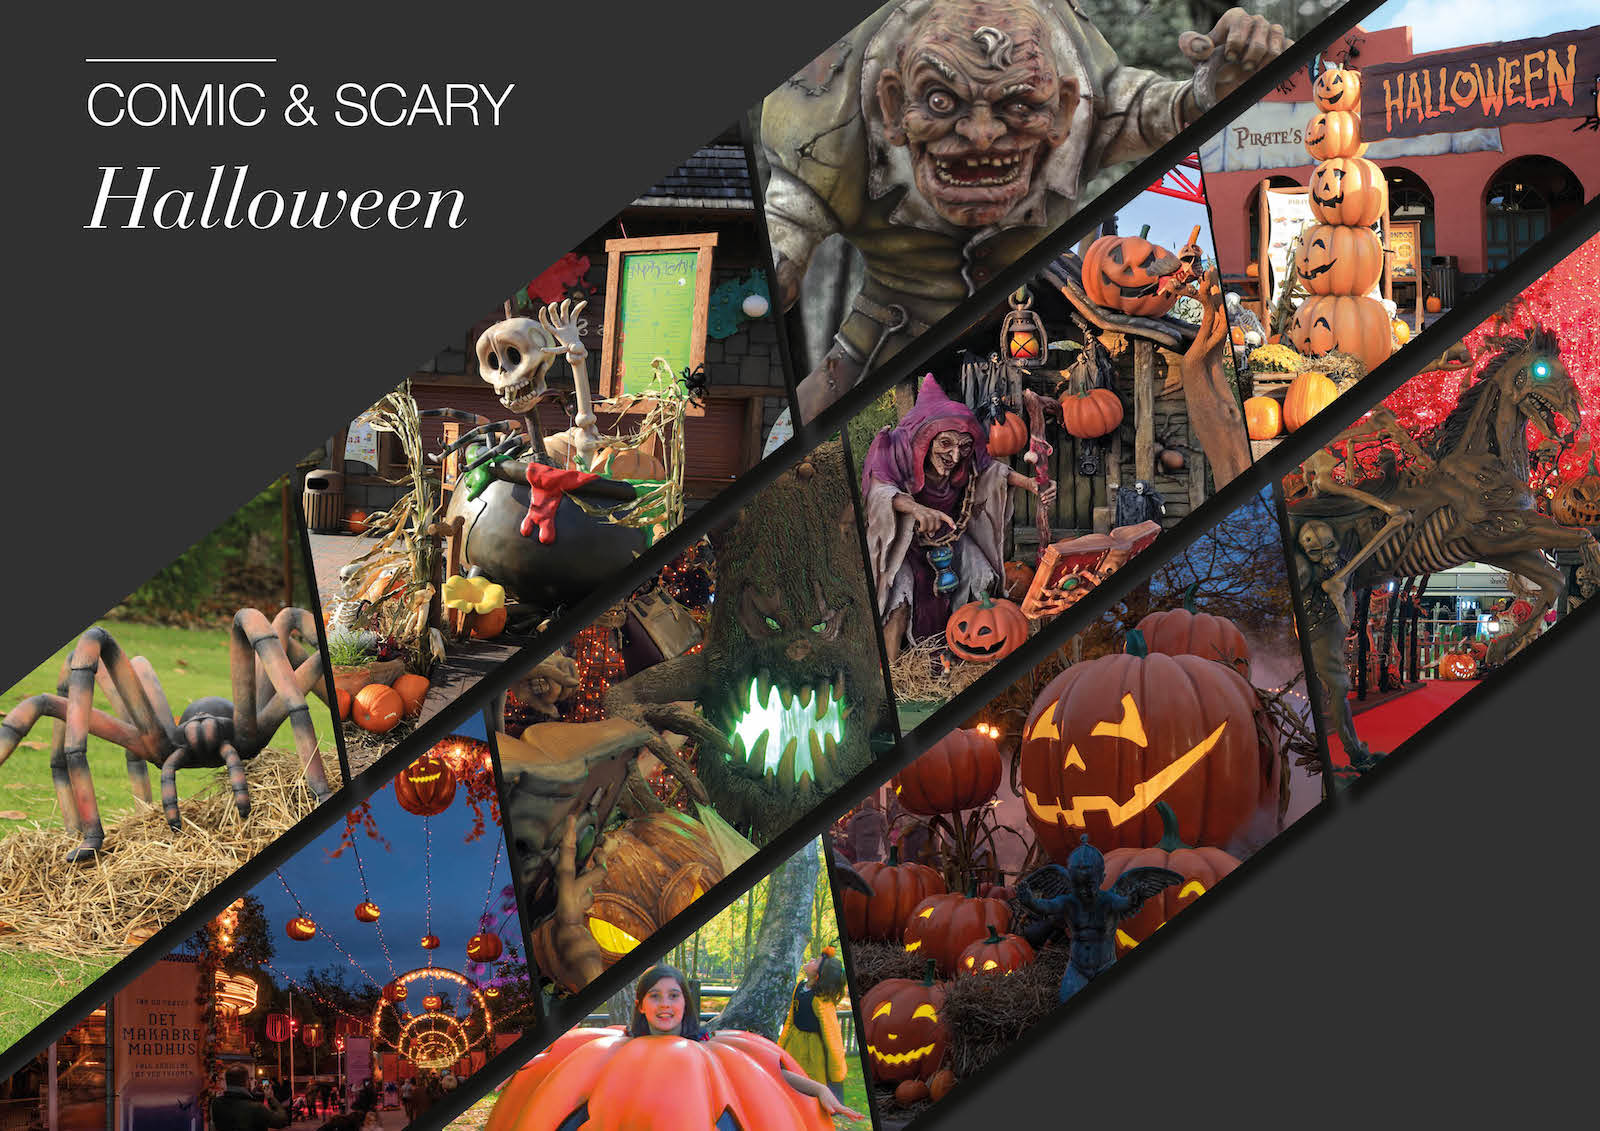 MK themed attractions halloween